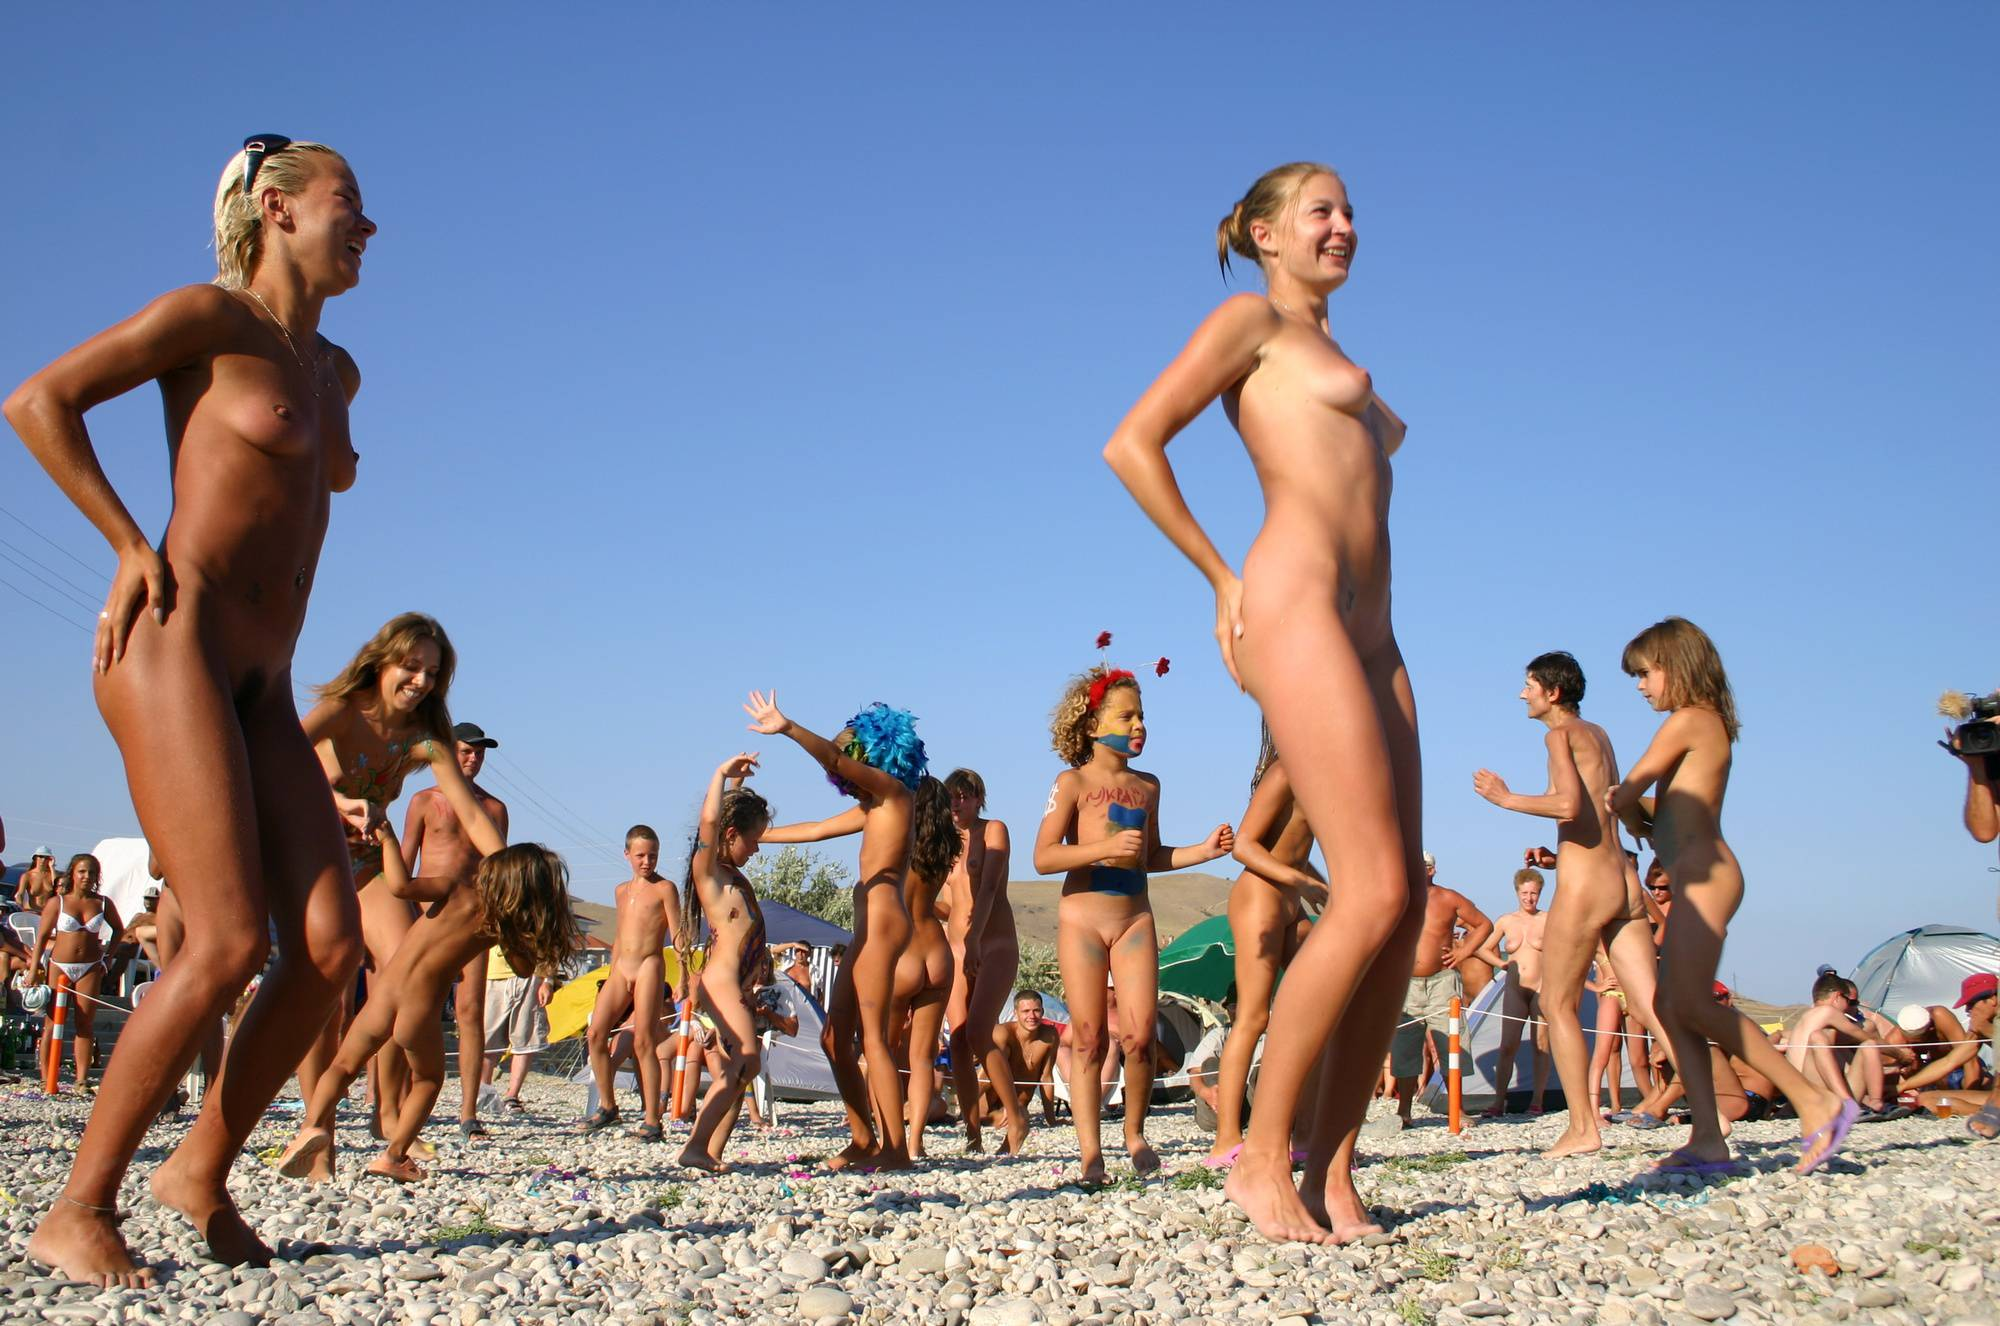 Nudist Pictures Family Dance Profile Part - 2